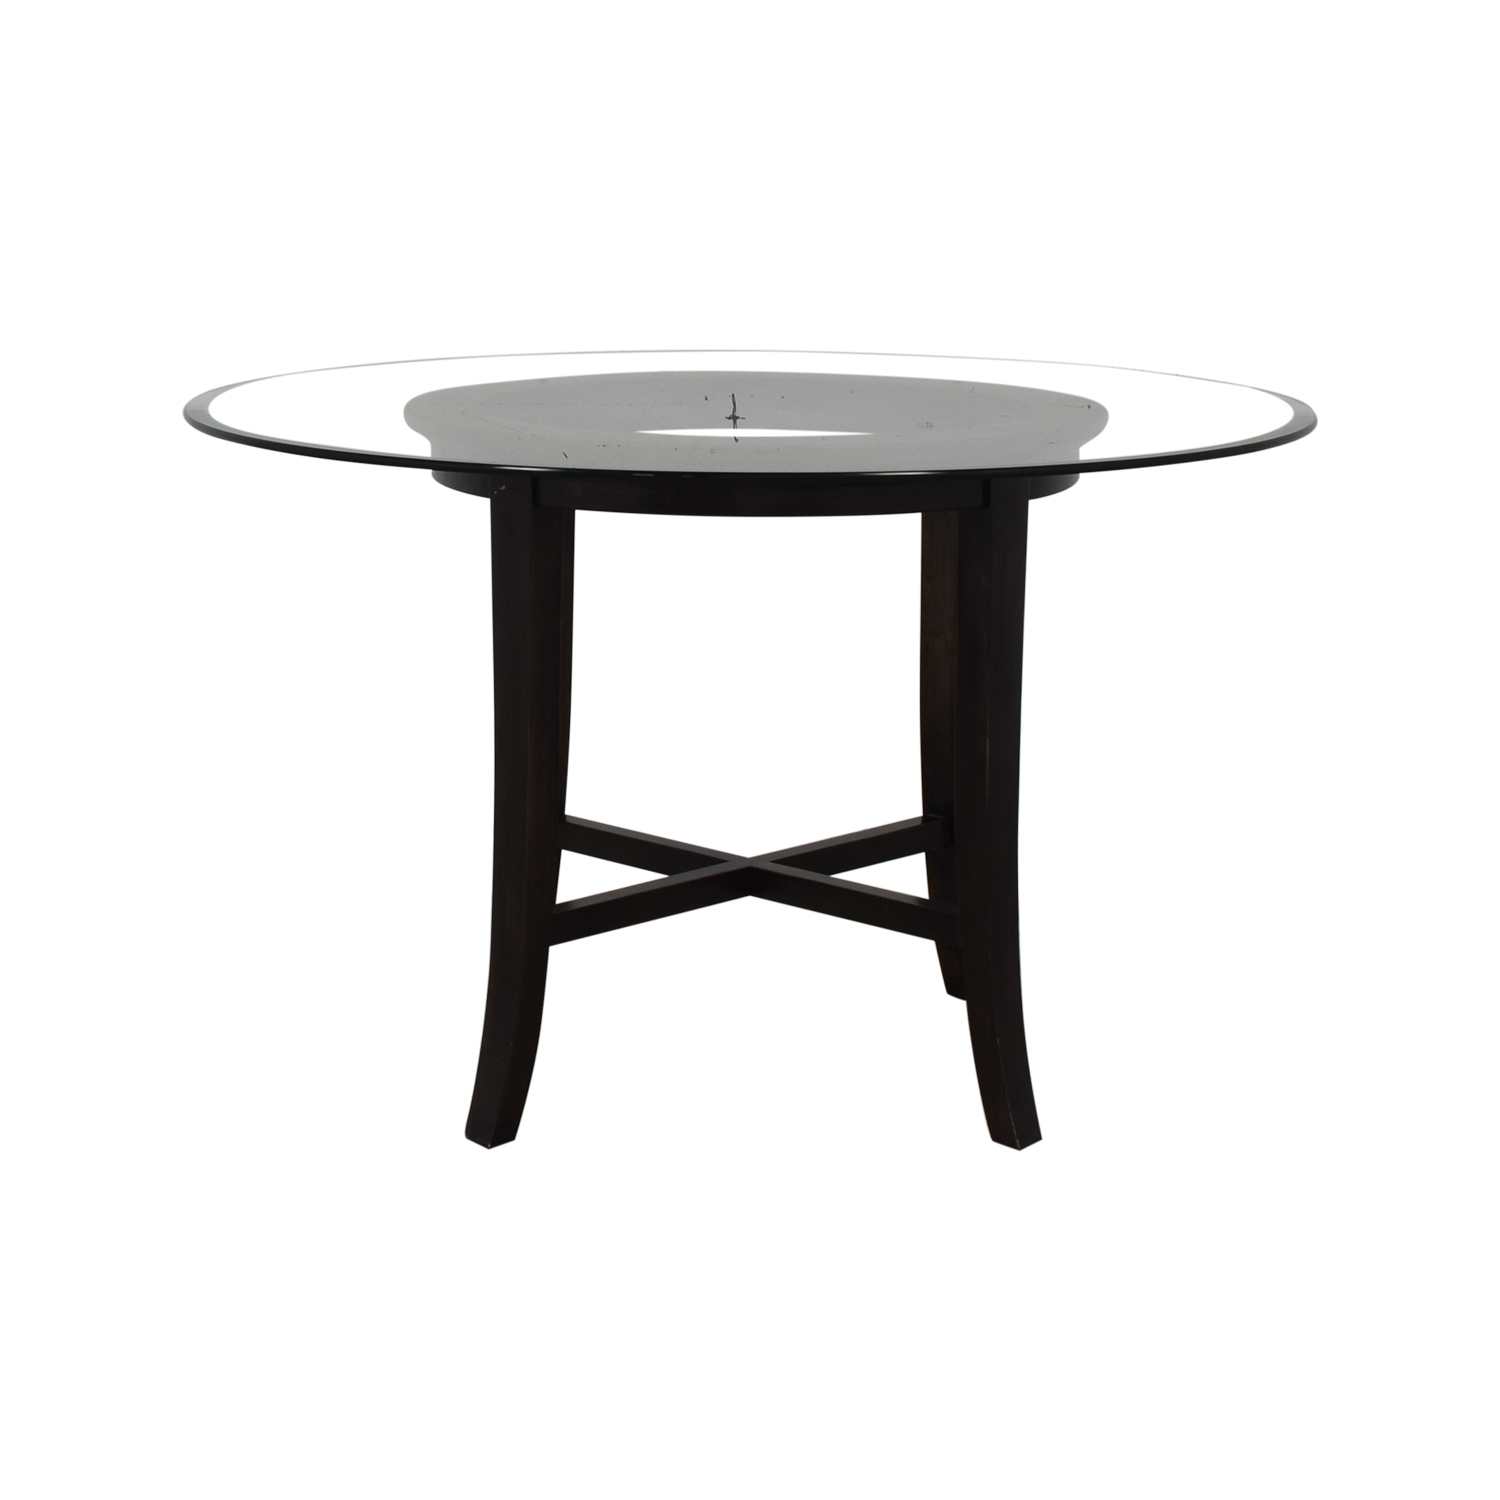 Crate & Barrel Halo Round Glass Dining Table / Tables